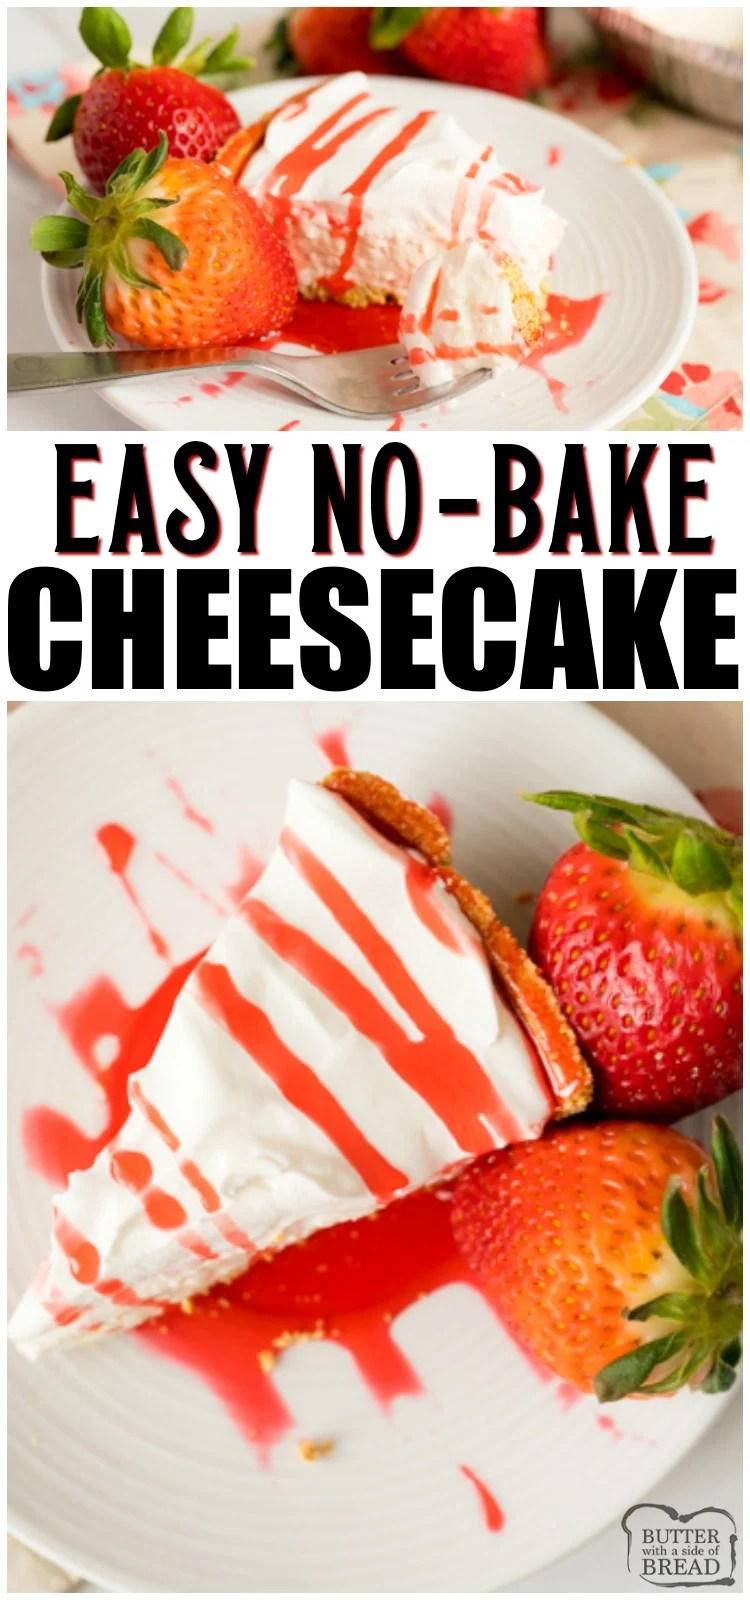 Easy No Bake Cheesecake with Strawberries is an easy 5 ingredient dessert that takes no time to make! Pudding mix, cream cheese and whipped topping make the smooth, no-bake cheesecake filling. Topped with fresh strawberries, it's the perfect Spring dessert. #cheesecake #dessert #easyrecipe #recipe #strawberries from BUTTER WITH A SIDE OF BREAD